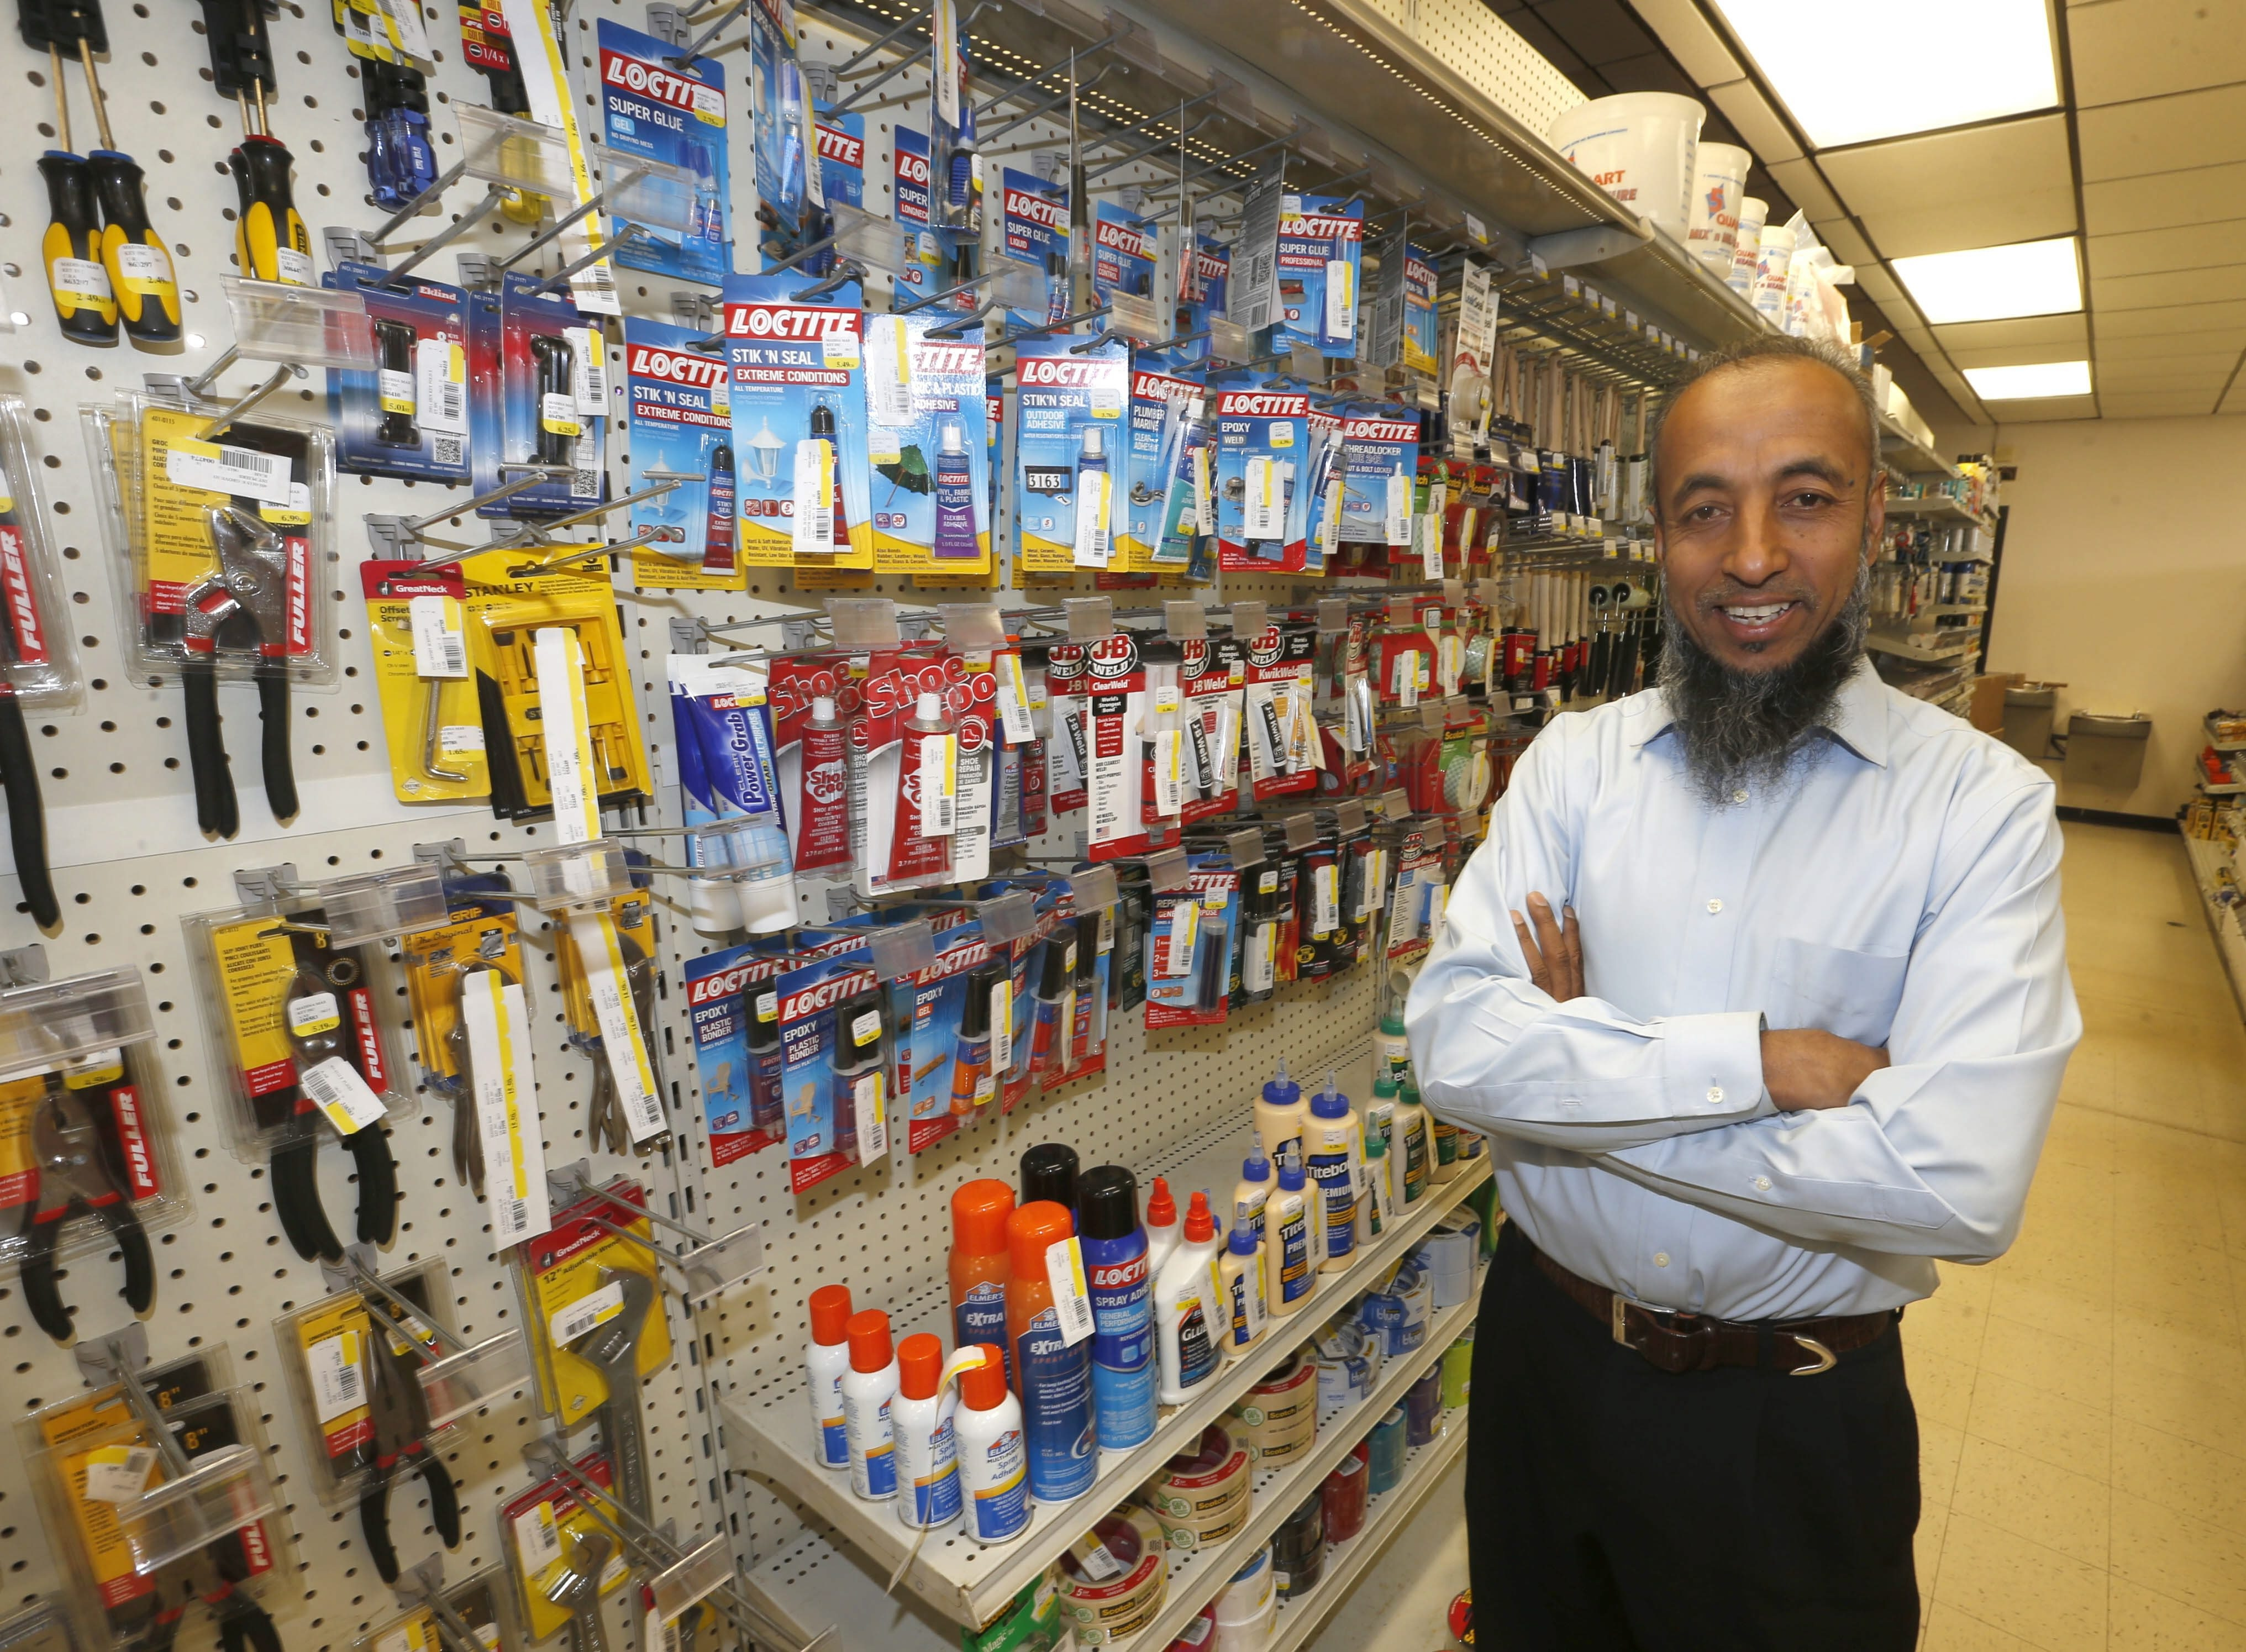 New owner of the old library building on Broadway turned hardware store, Atiqur Rahman,  on Friday, Oct. 2, 2015.  (Robert Kirkham/Buffalo News)